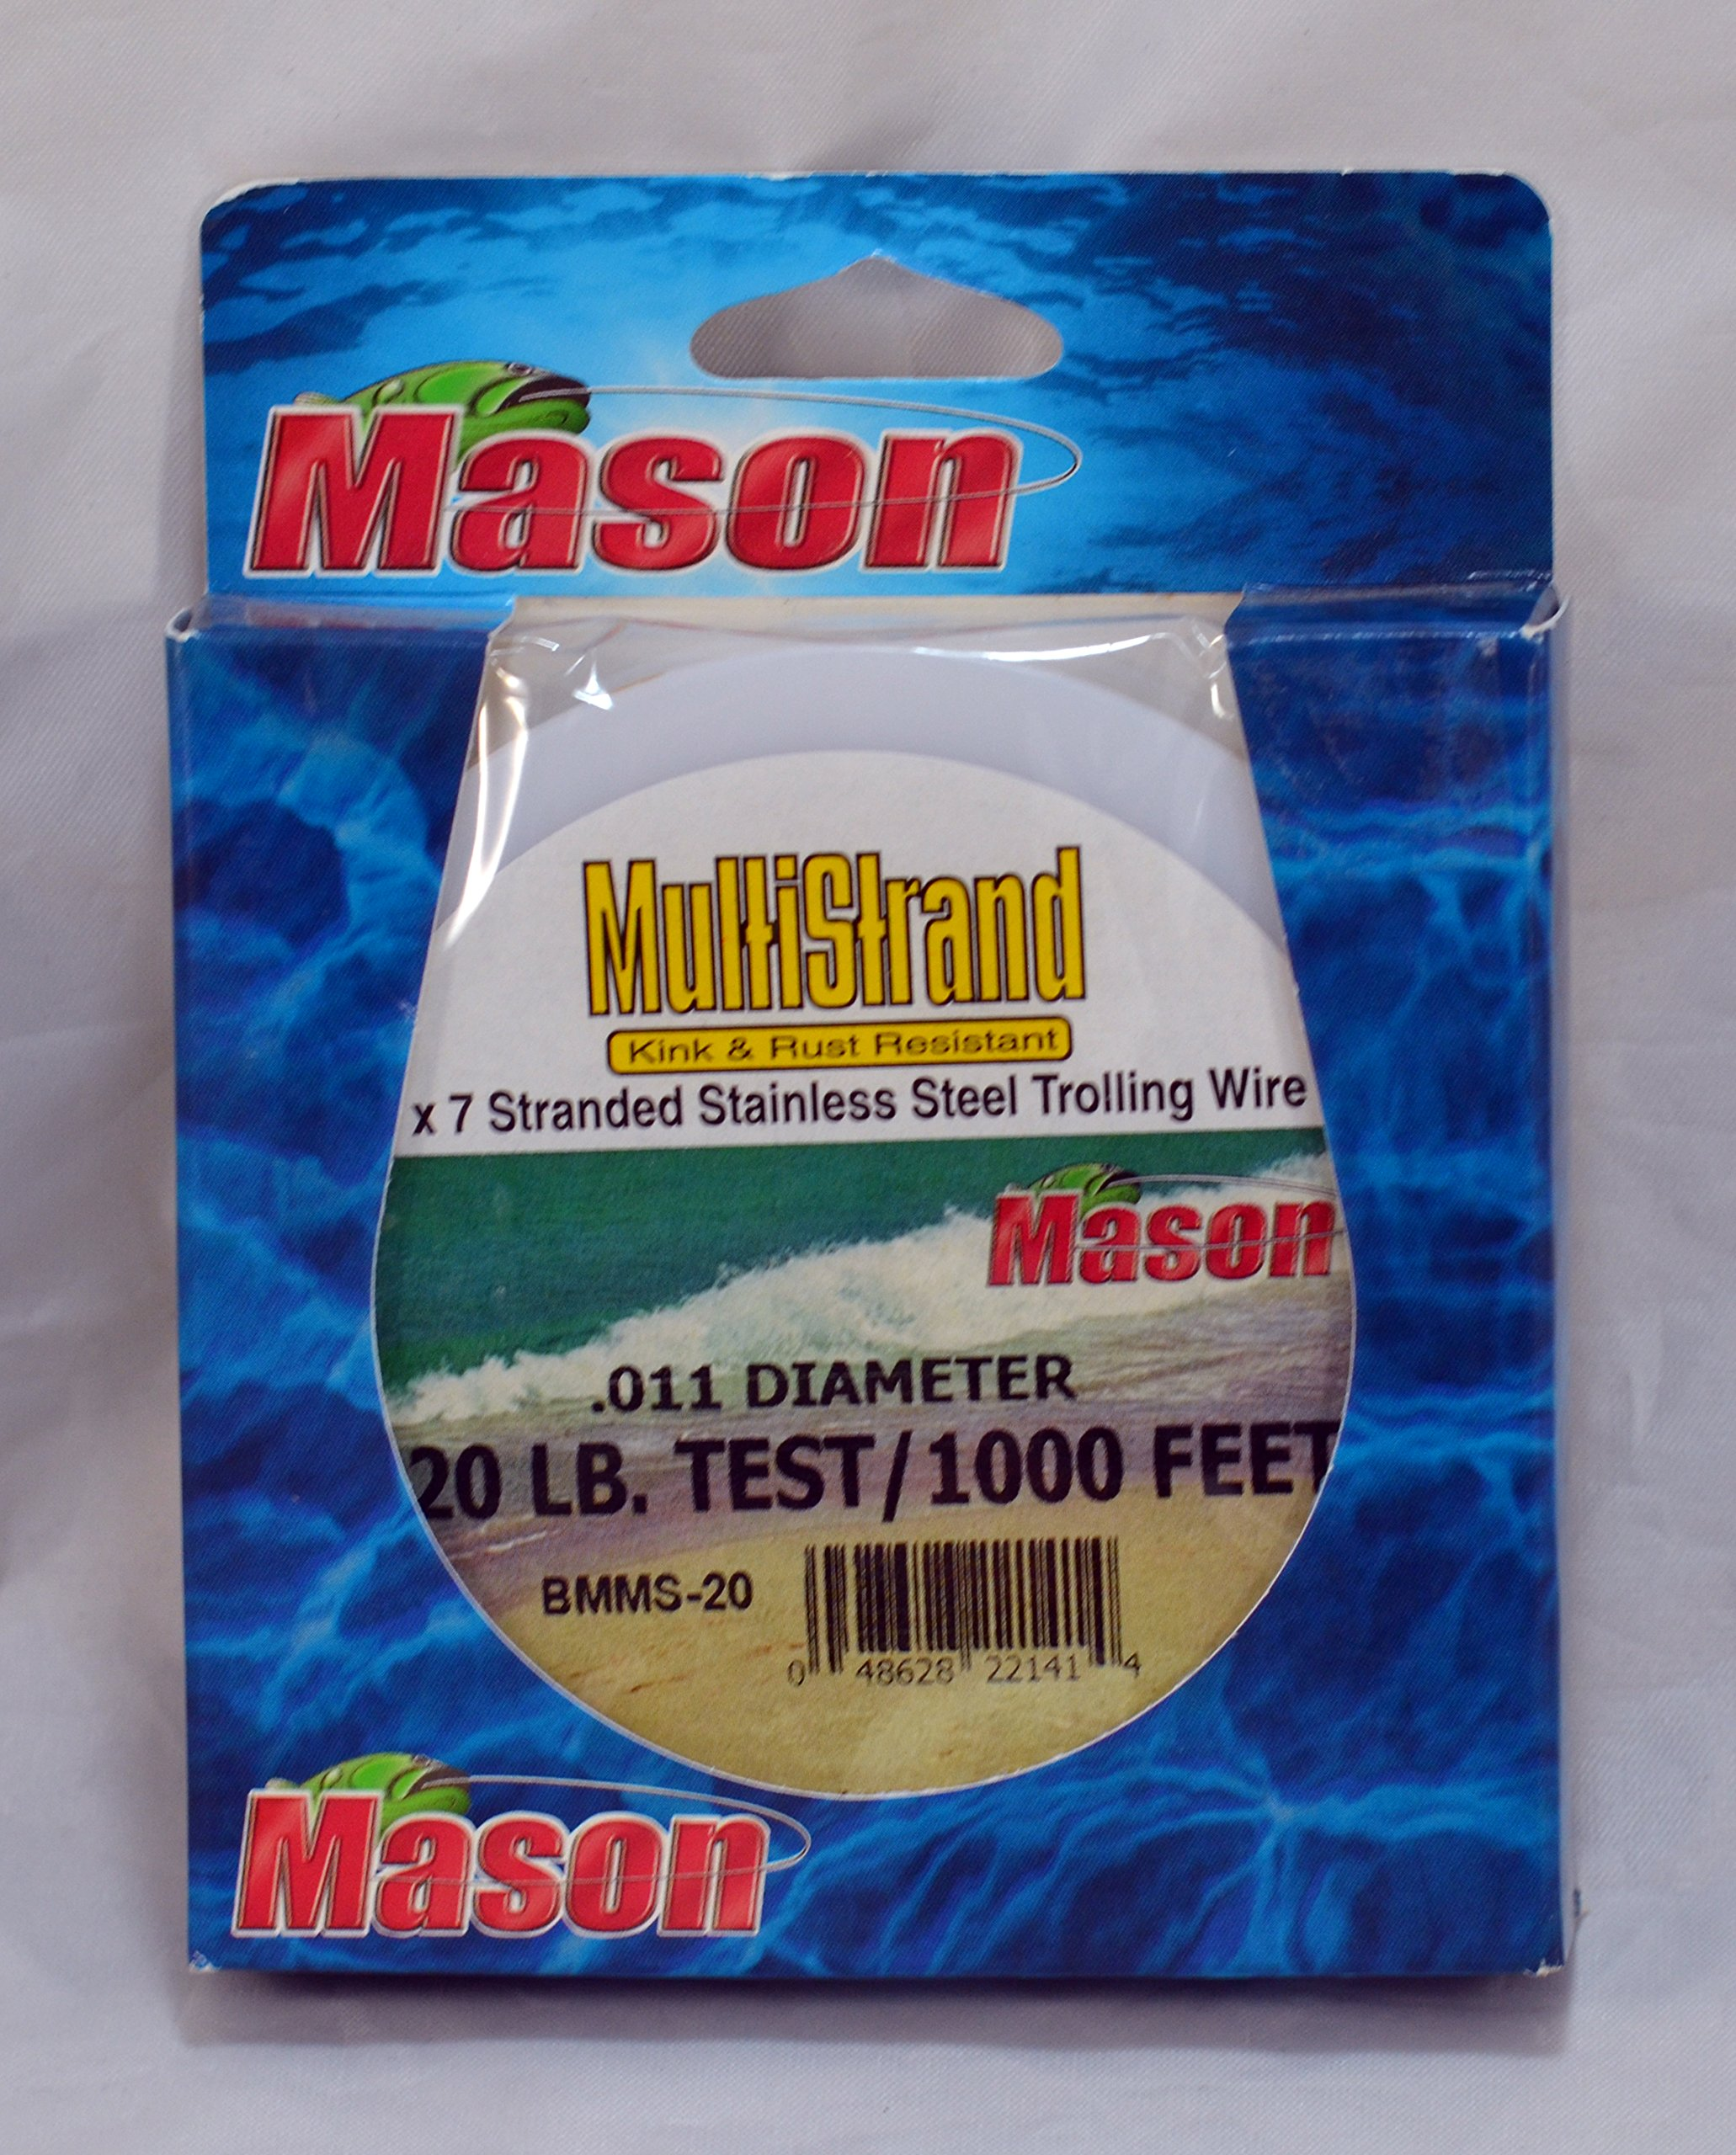 Mason Tackle Multistrand Leader Wire Brown 30# 1000' BMMS-30 by Mason Tackle